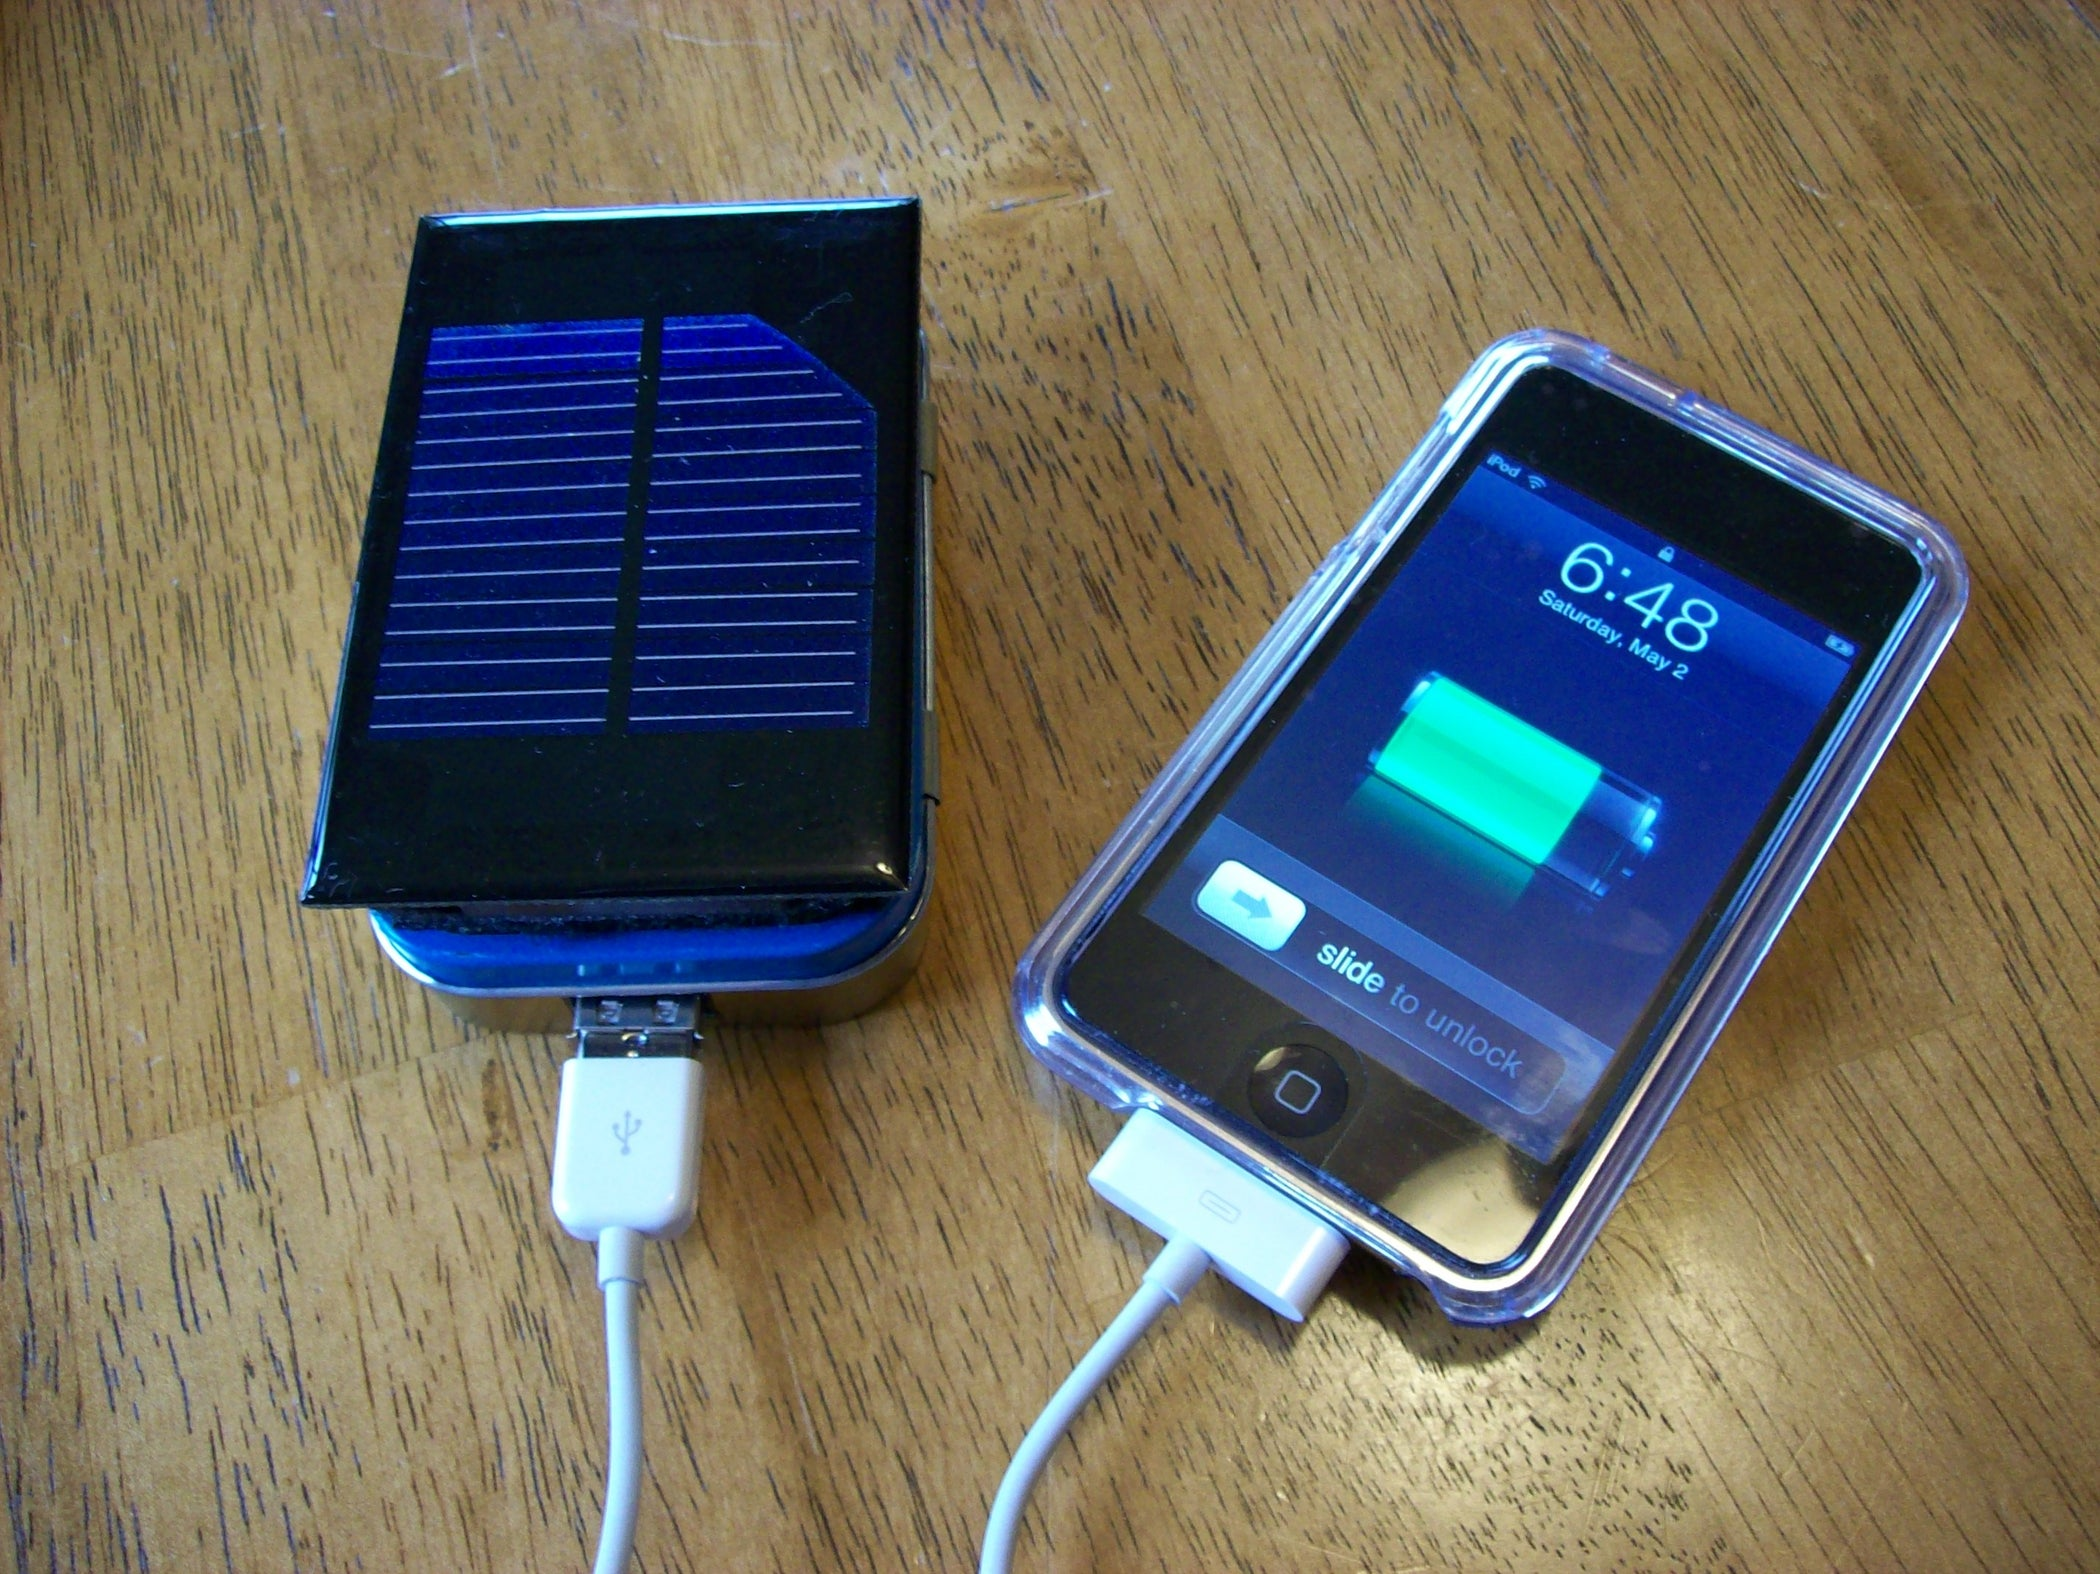 How To Make A Solar Ipod Iphone Charger Aka Mightymintyboost 5 Cellphone Lithium Ion Battery Circuit Of Lm317 Steps With Pictures